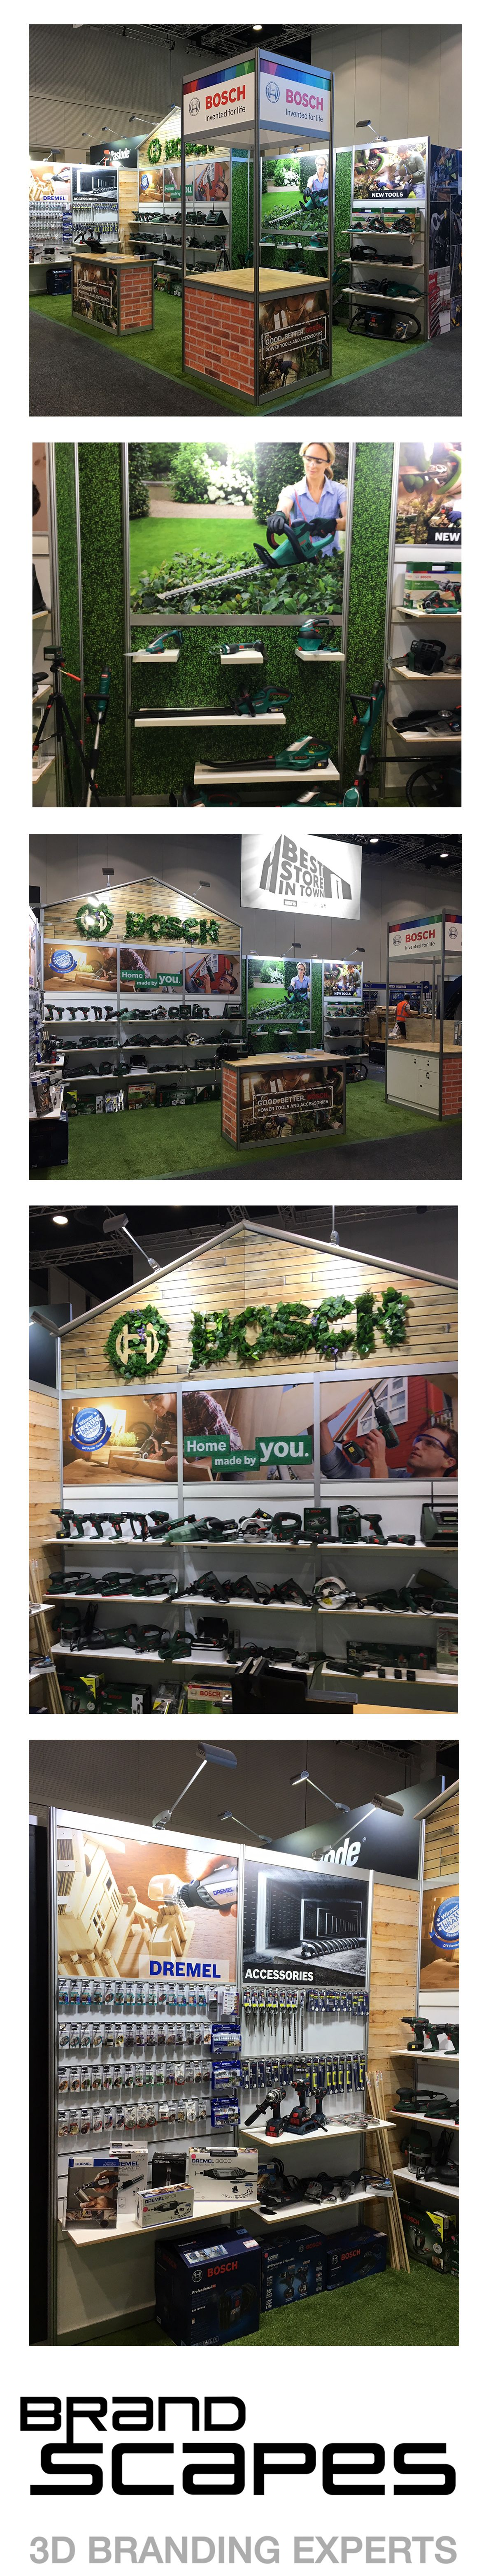 Exhibition Stand ideas. Tradeshow design and construction. Custom stand builders Melbourne, Sydney & Brisbane. Expo and event tips #design #3dbranding #brandingexperts #experience #brandenvironment #marketing #spatialdesign #exhibitiondesign #custom #melbournemakers #customstand #standdesign #tradeshowstand #communication #graphicdesign #reclaimedwood #interior #hardwood #woodwork #retaildesign #retail